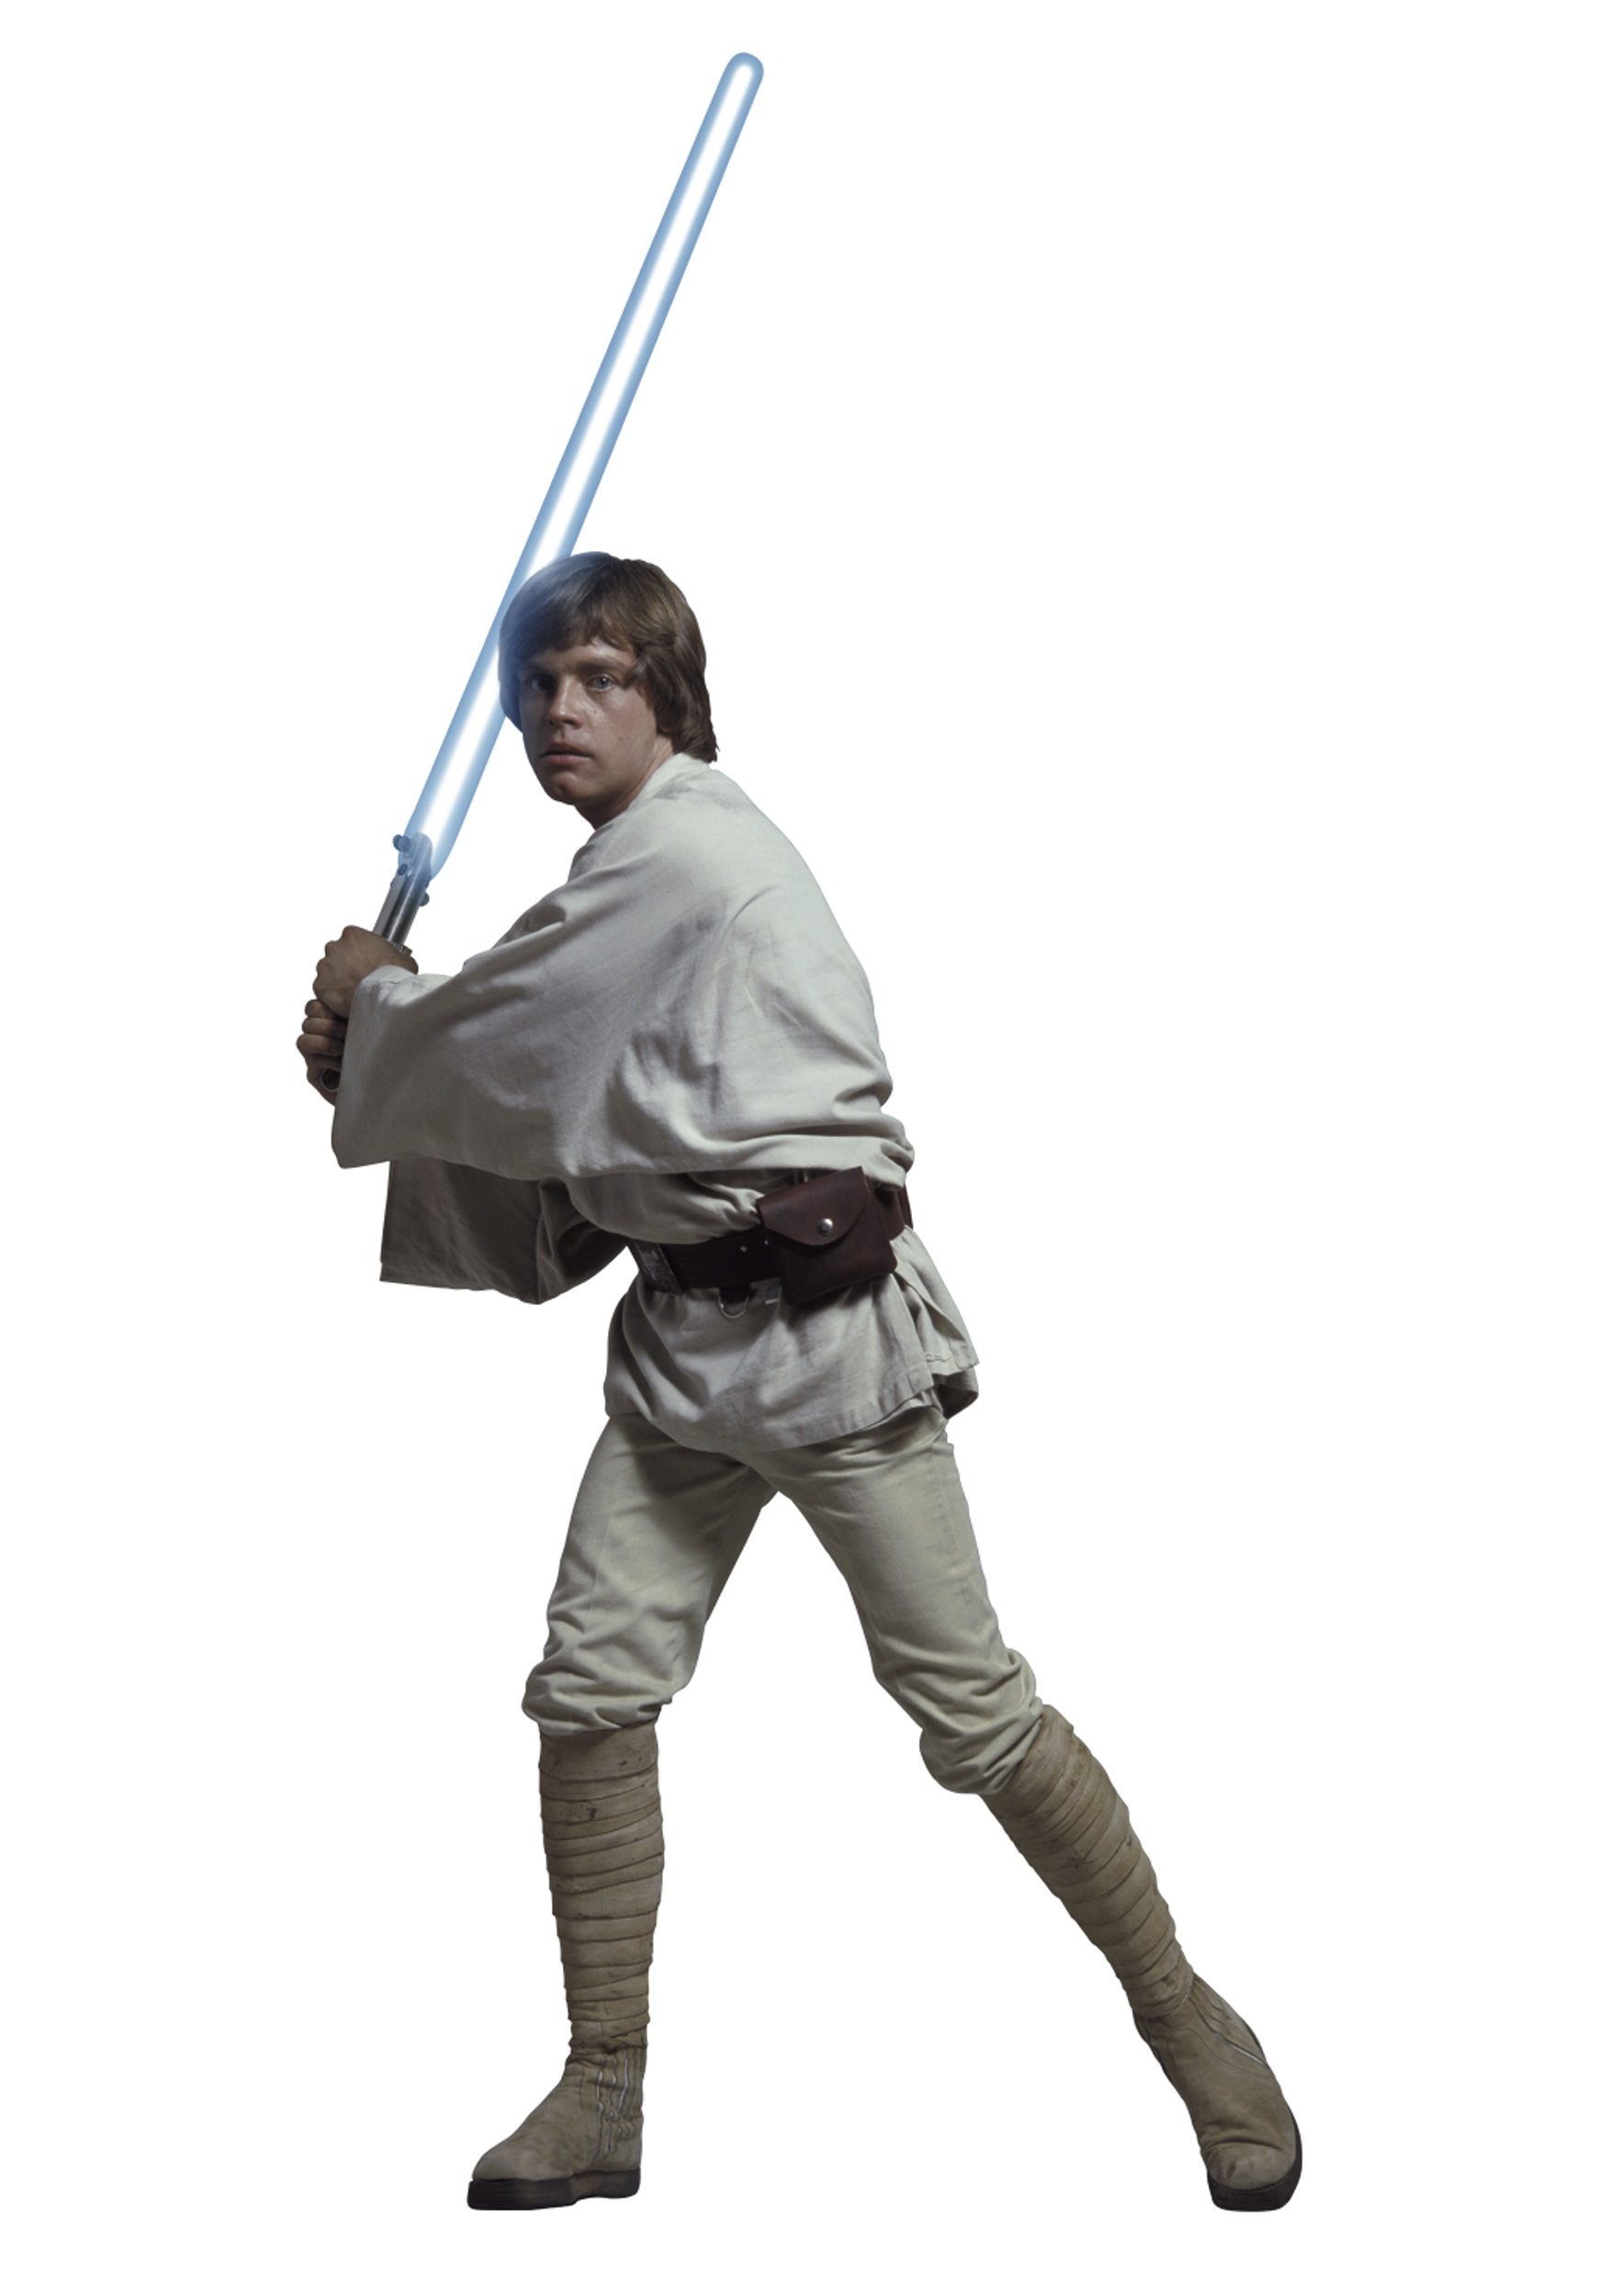 Top HD Luke Skywalker Wallpaper Movie HD 27527 KB 1750x2500